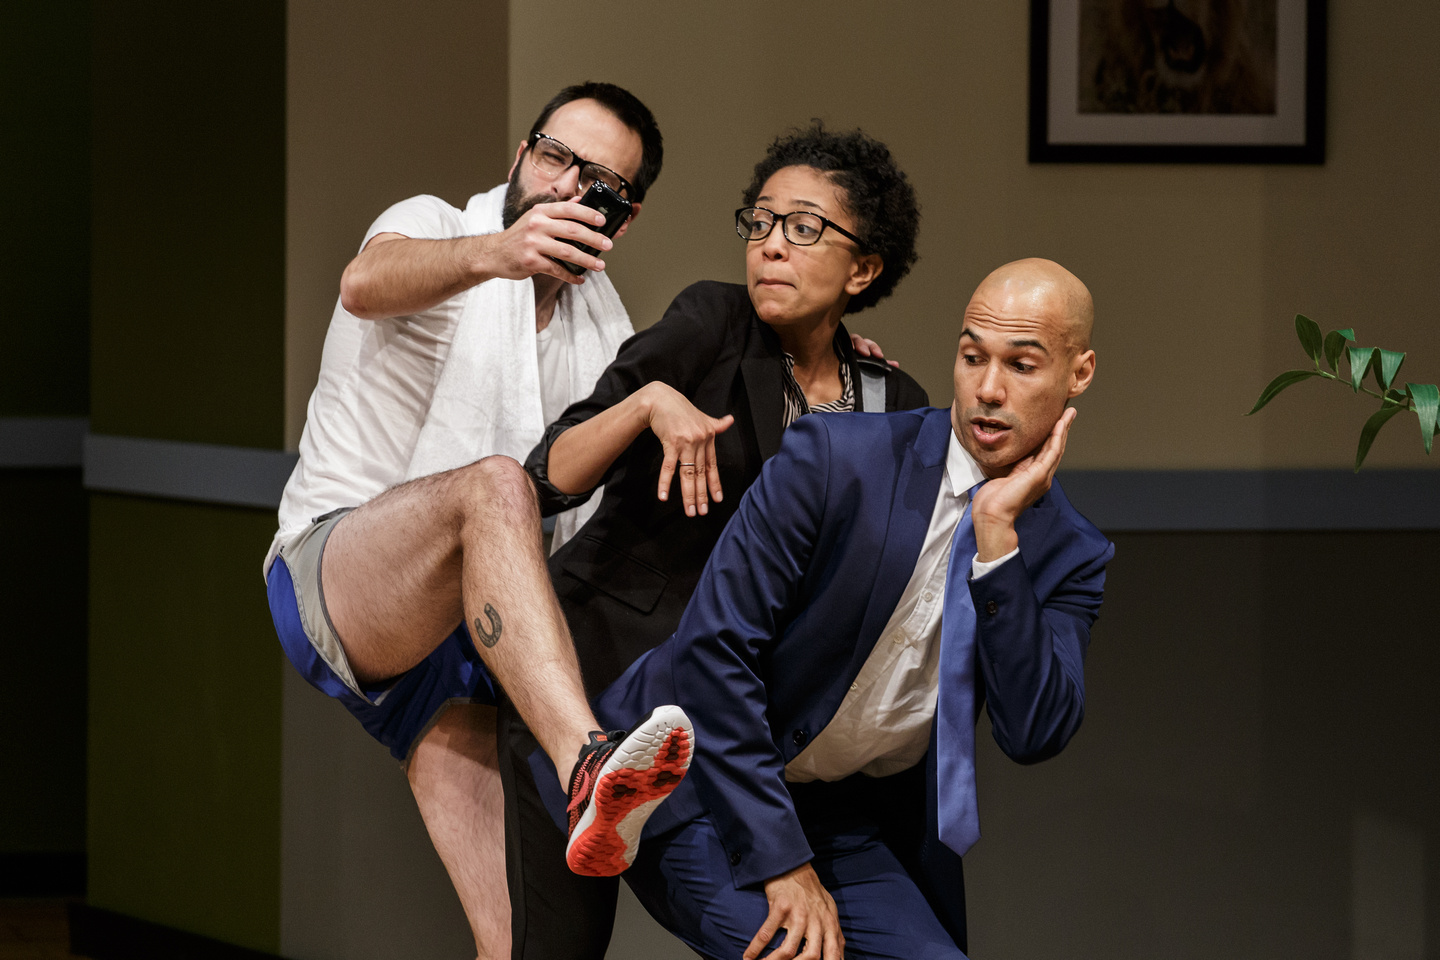 Movers + Shakers by Deborah Stein (directed by Suli Holum) photo: Jim Carmody